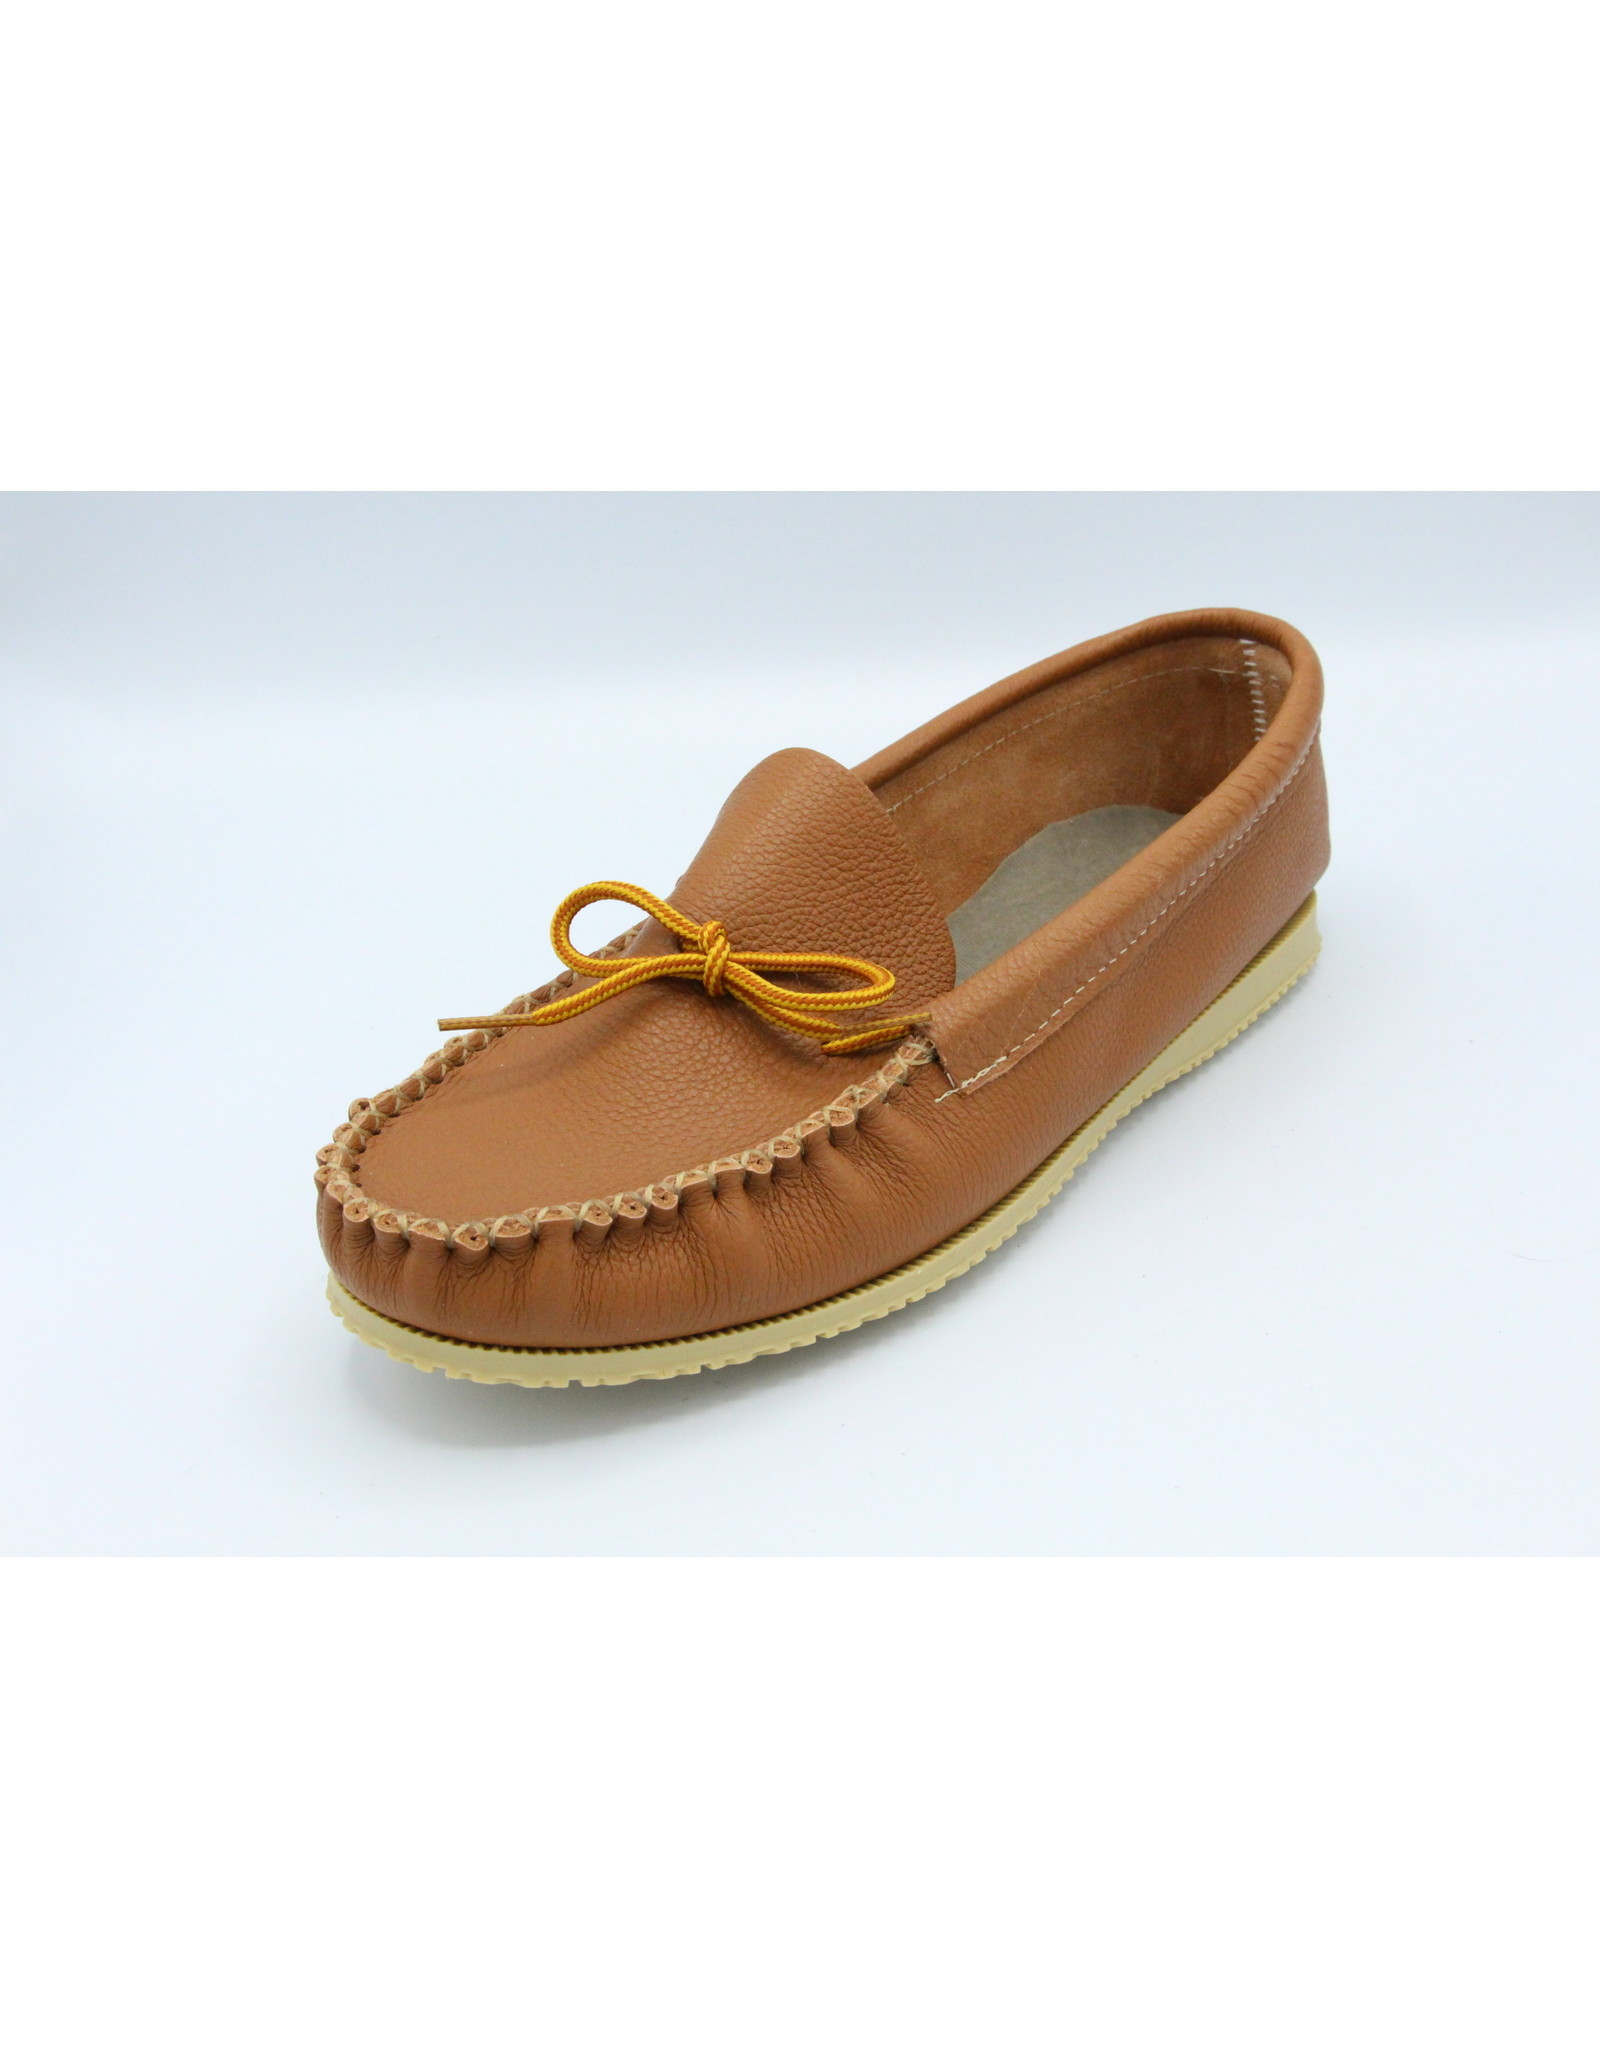 Leather Moccasin - 1143